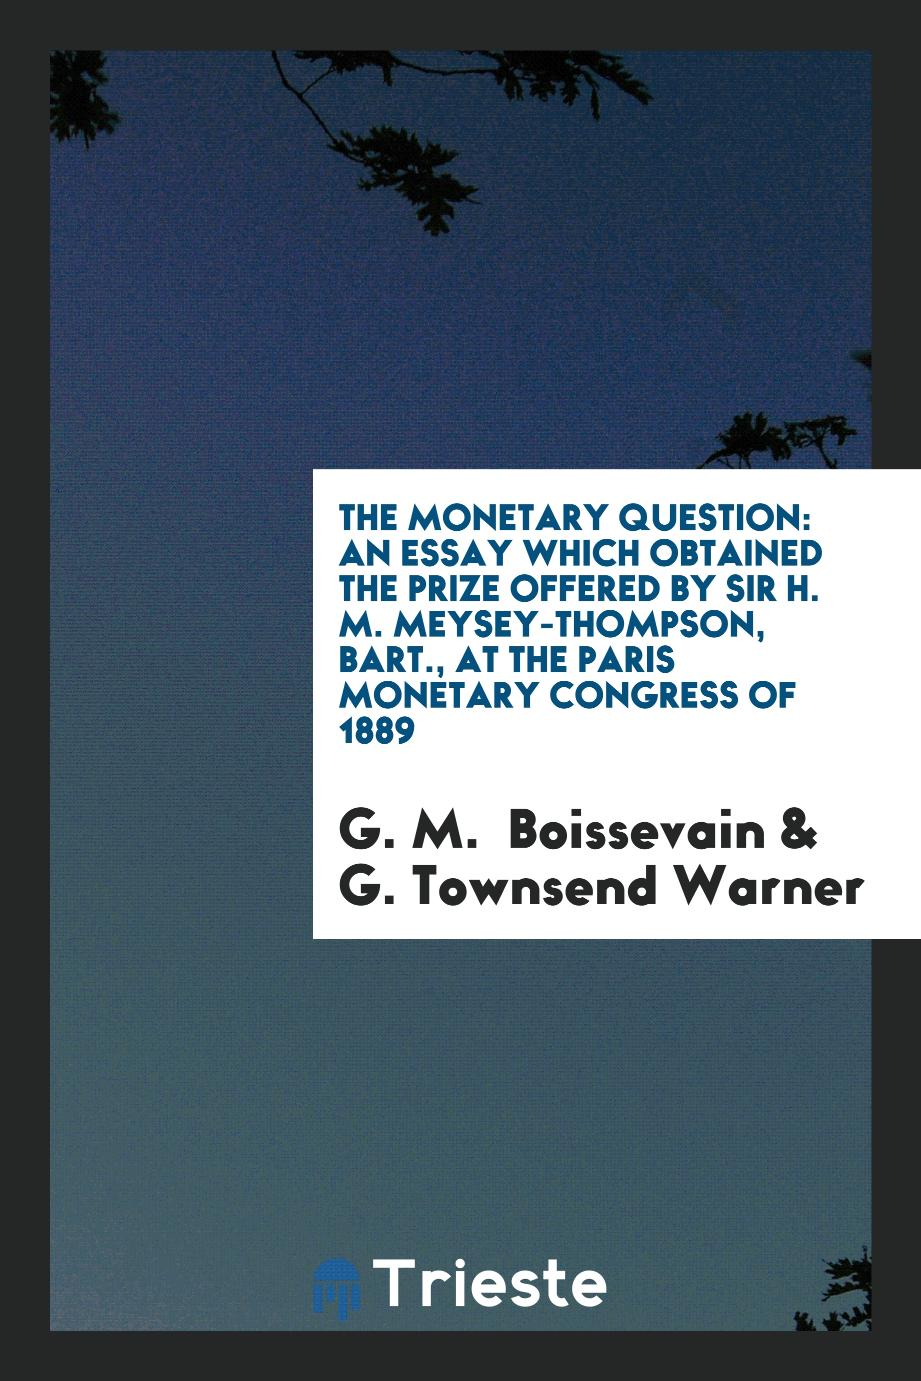 The Monetary Question: An Essay which Obtained the Prize Offered by Sir H. M. Meysey-Thompson, Bart., at the Paris Monetary Congress of 1889